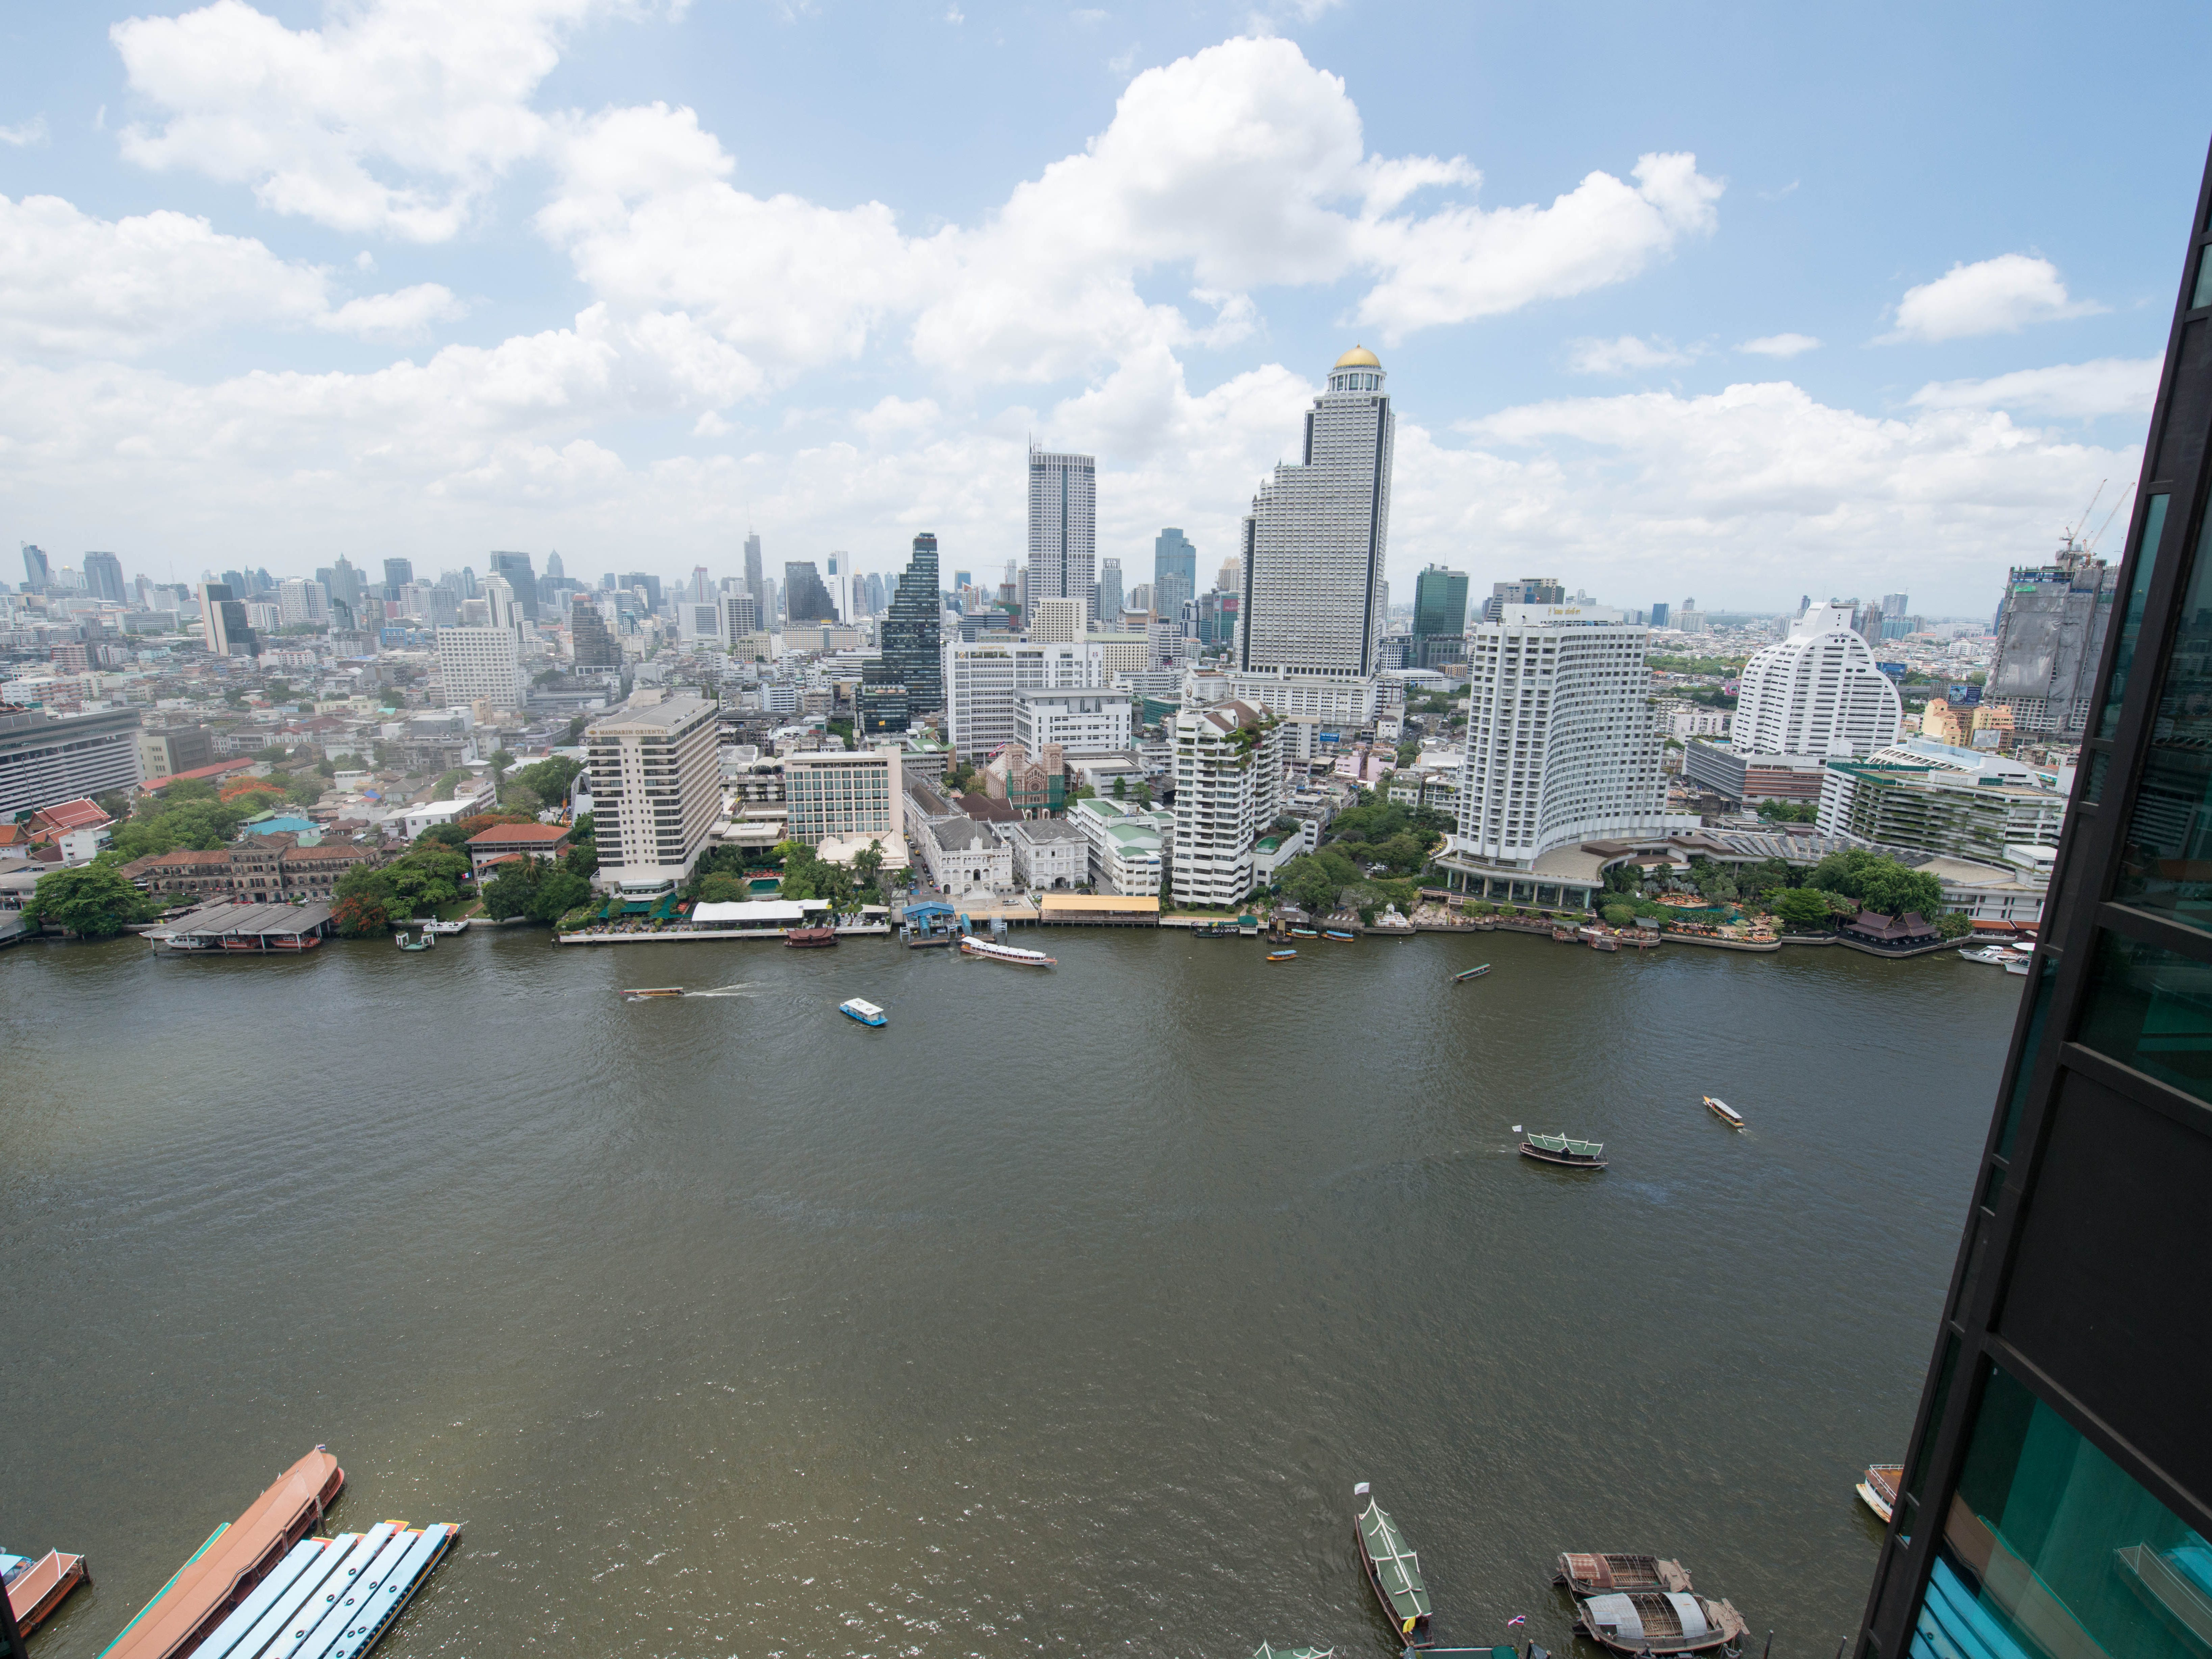 The Peninsula Bangkok: A location on the west side of the Chao Phraya River, across from Bangkok's main attractions, could be considered a drawback, as it means getting to Bangkok proper by road is arduous. On the plus side, the position guarantees unobstructed views of the river and the dramatic Bangkok skyline. (Plus, the hotel runs a free shuttle boat on the river, which drops guests off at the Saphan Taksin pier.) All rooms benefit from this perspective, and some, like the Grand Balcony Room, feature outdoor balcony seating – and stunning views.